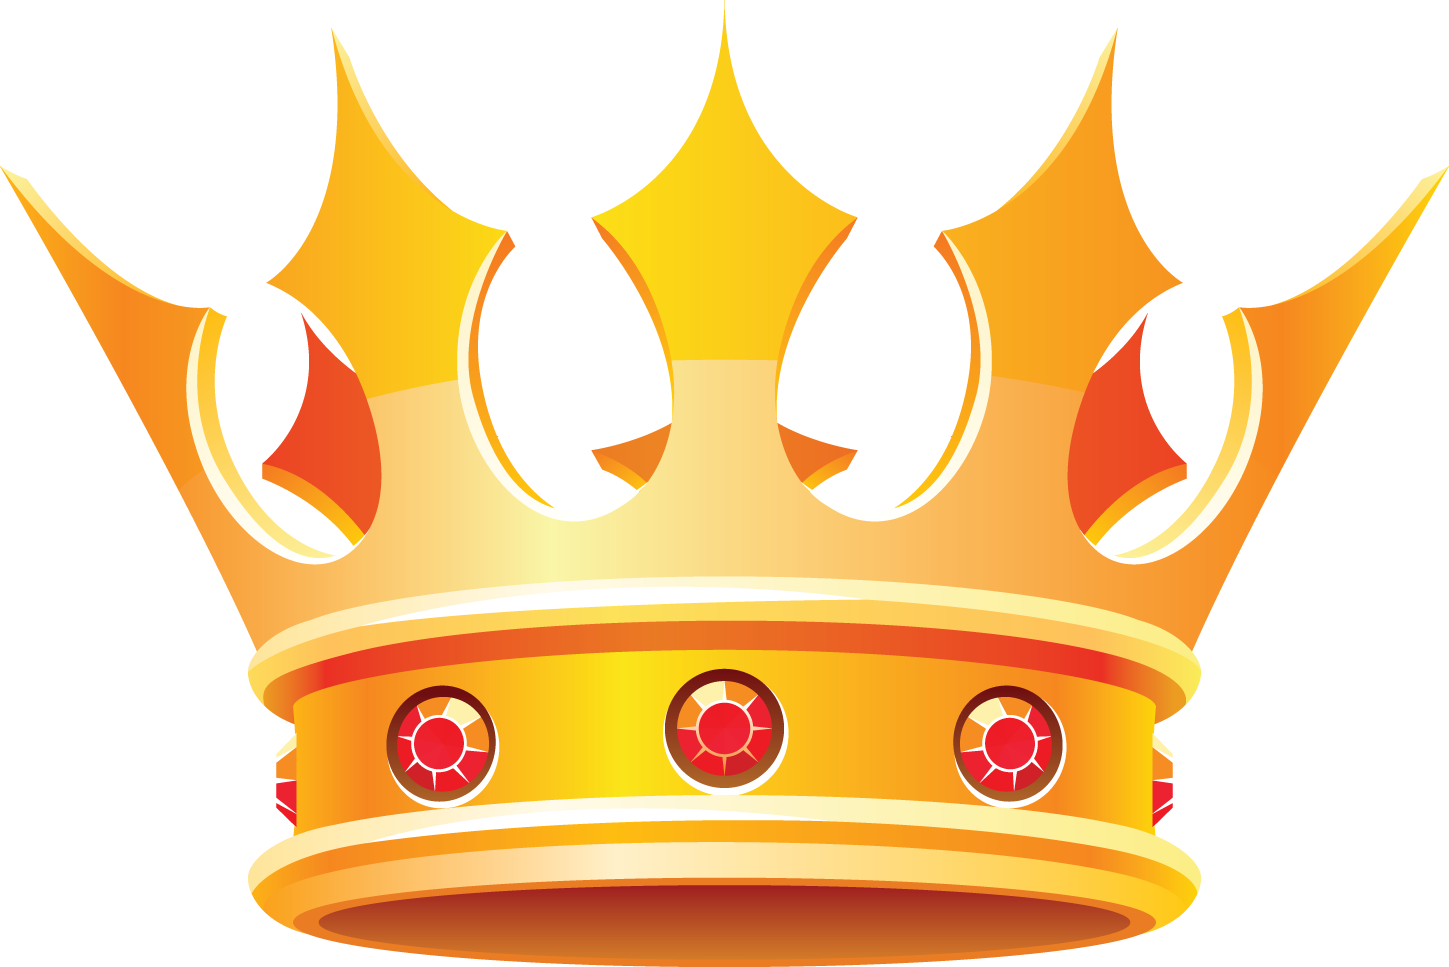 Heart with crown clipart transparent png freeuse download Queen Crown Clipart at GetDrawings.com | Free for personal use Queen ... png freeuse download